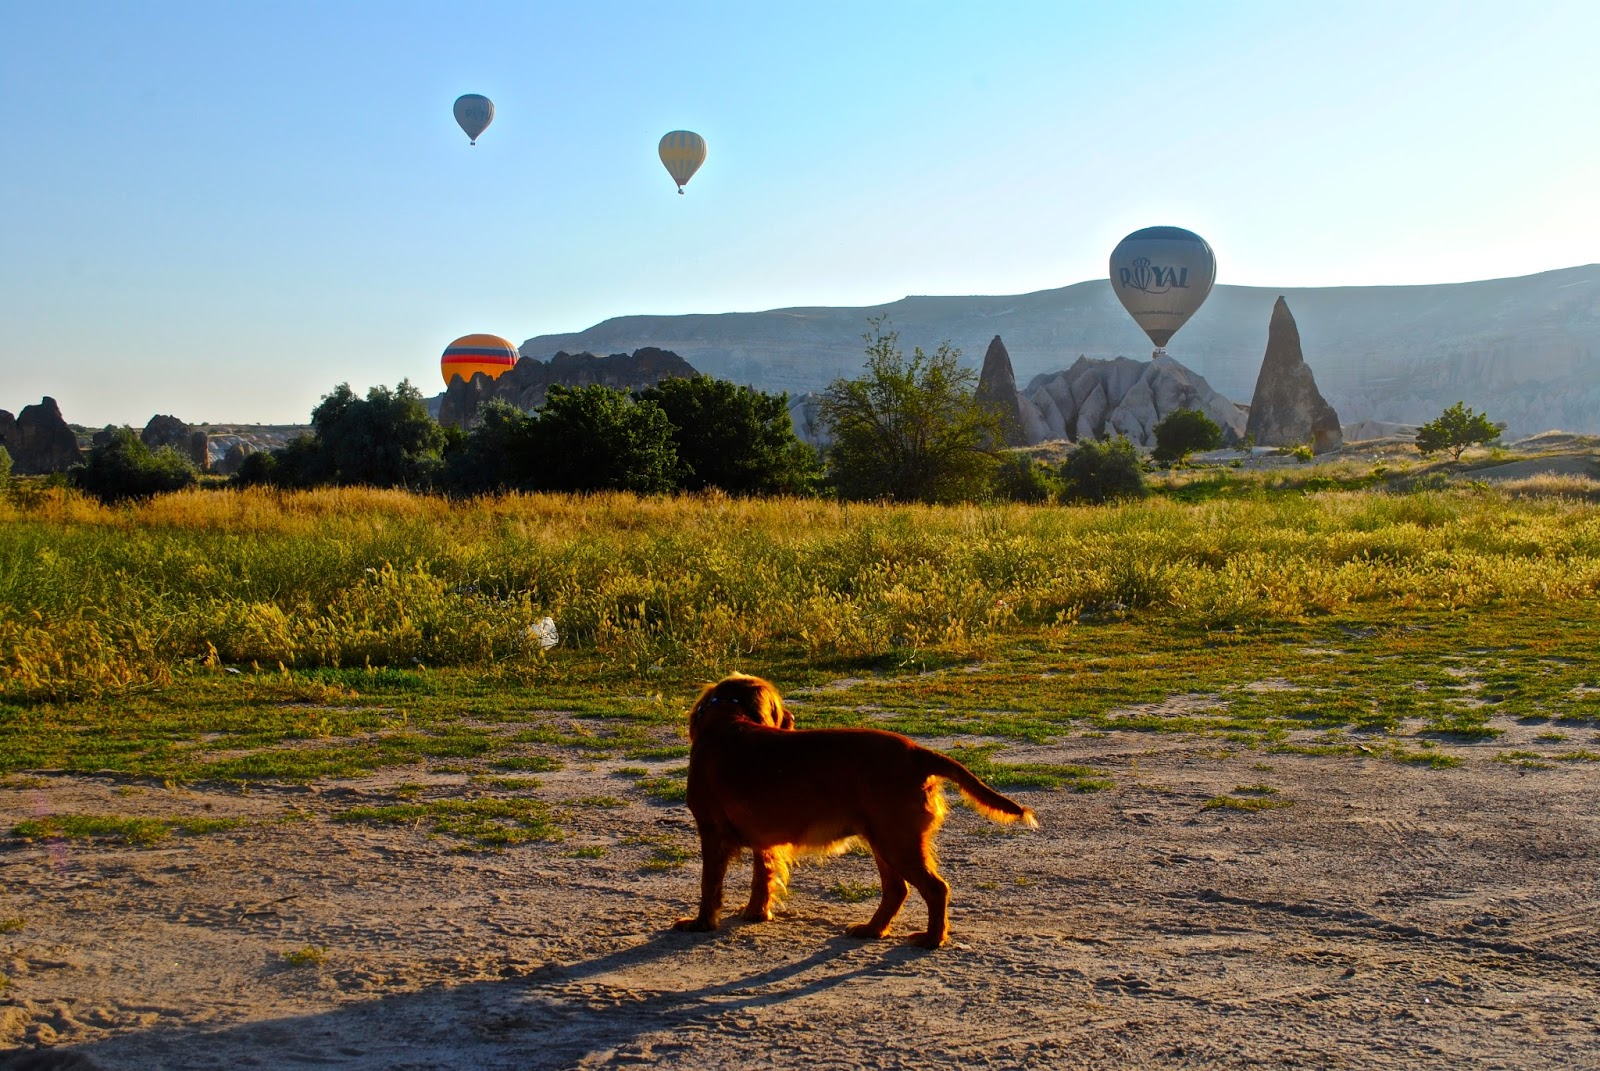 Hot Air Ballooning over Goreme Cappadocia at Sunrise with Butterfly Balloons